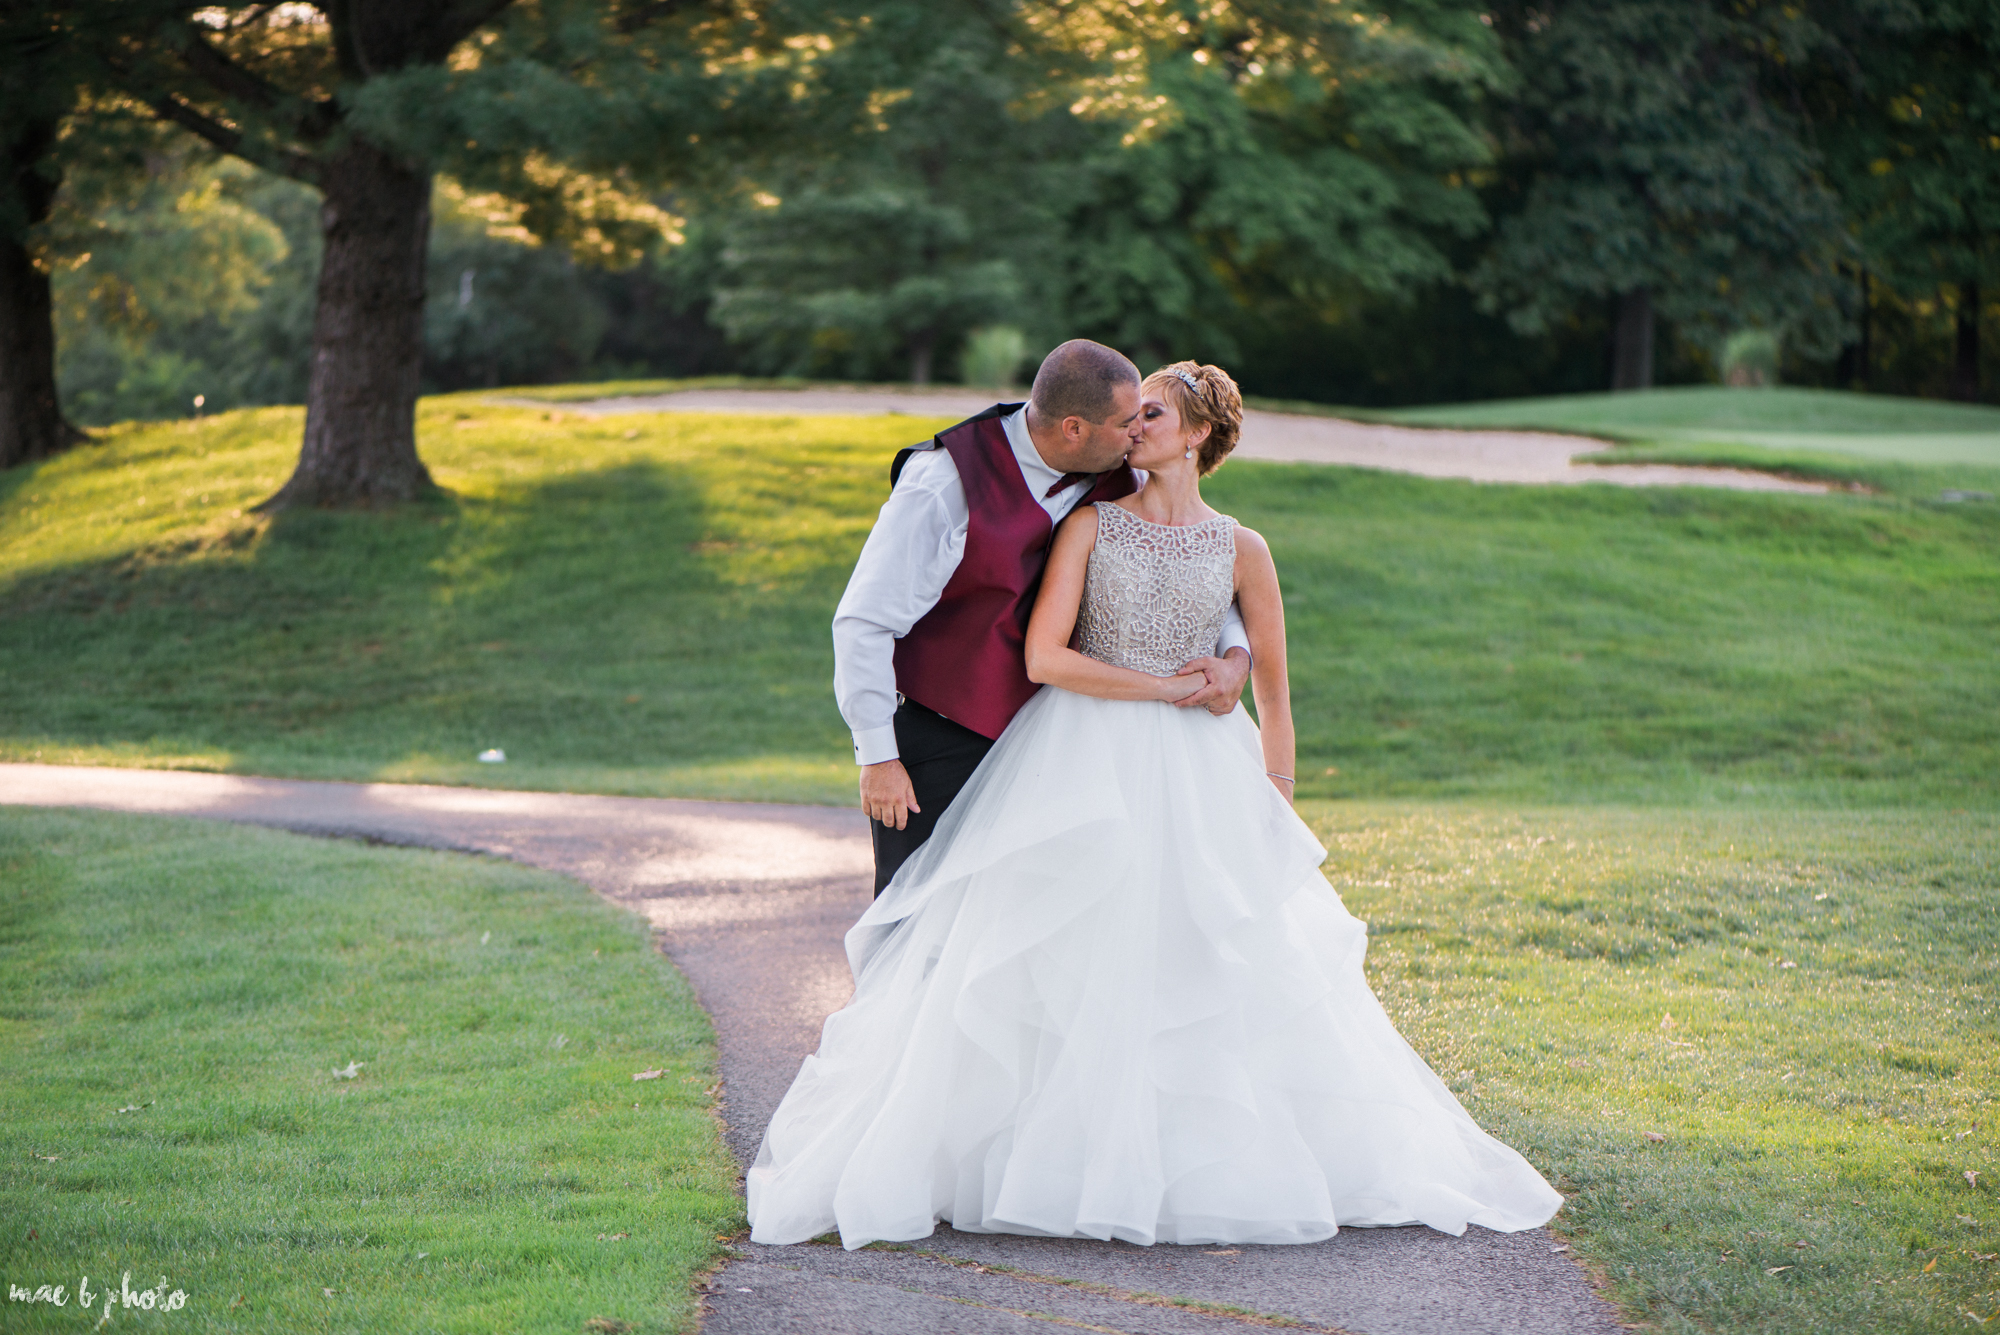 Mary Catherine & Chad's Elegant and Intimate Country Club Wedding at Squaw Creek in Youngstown Ohio by Mae B Photo-84.jpg